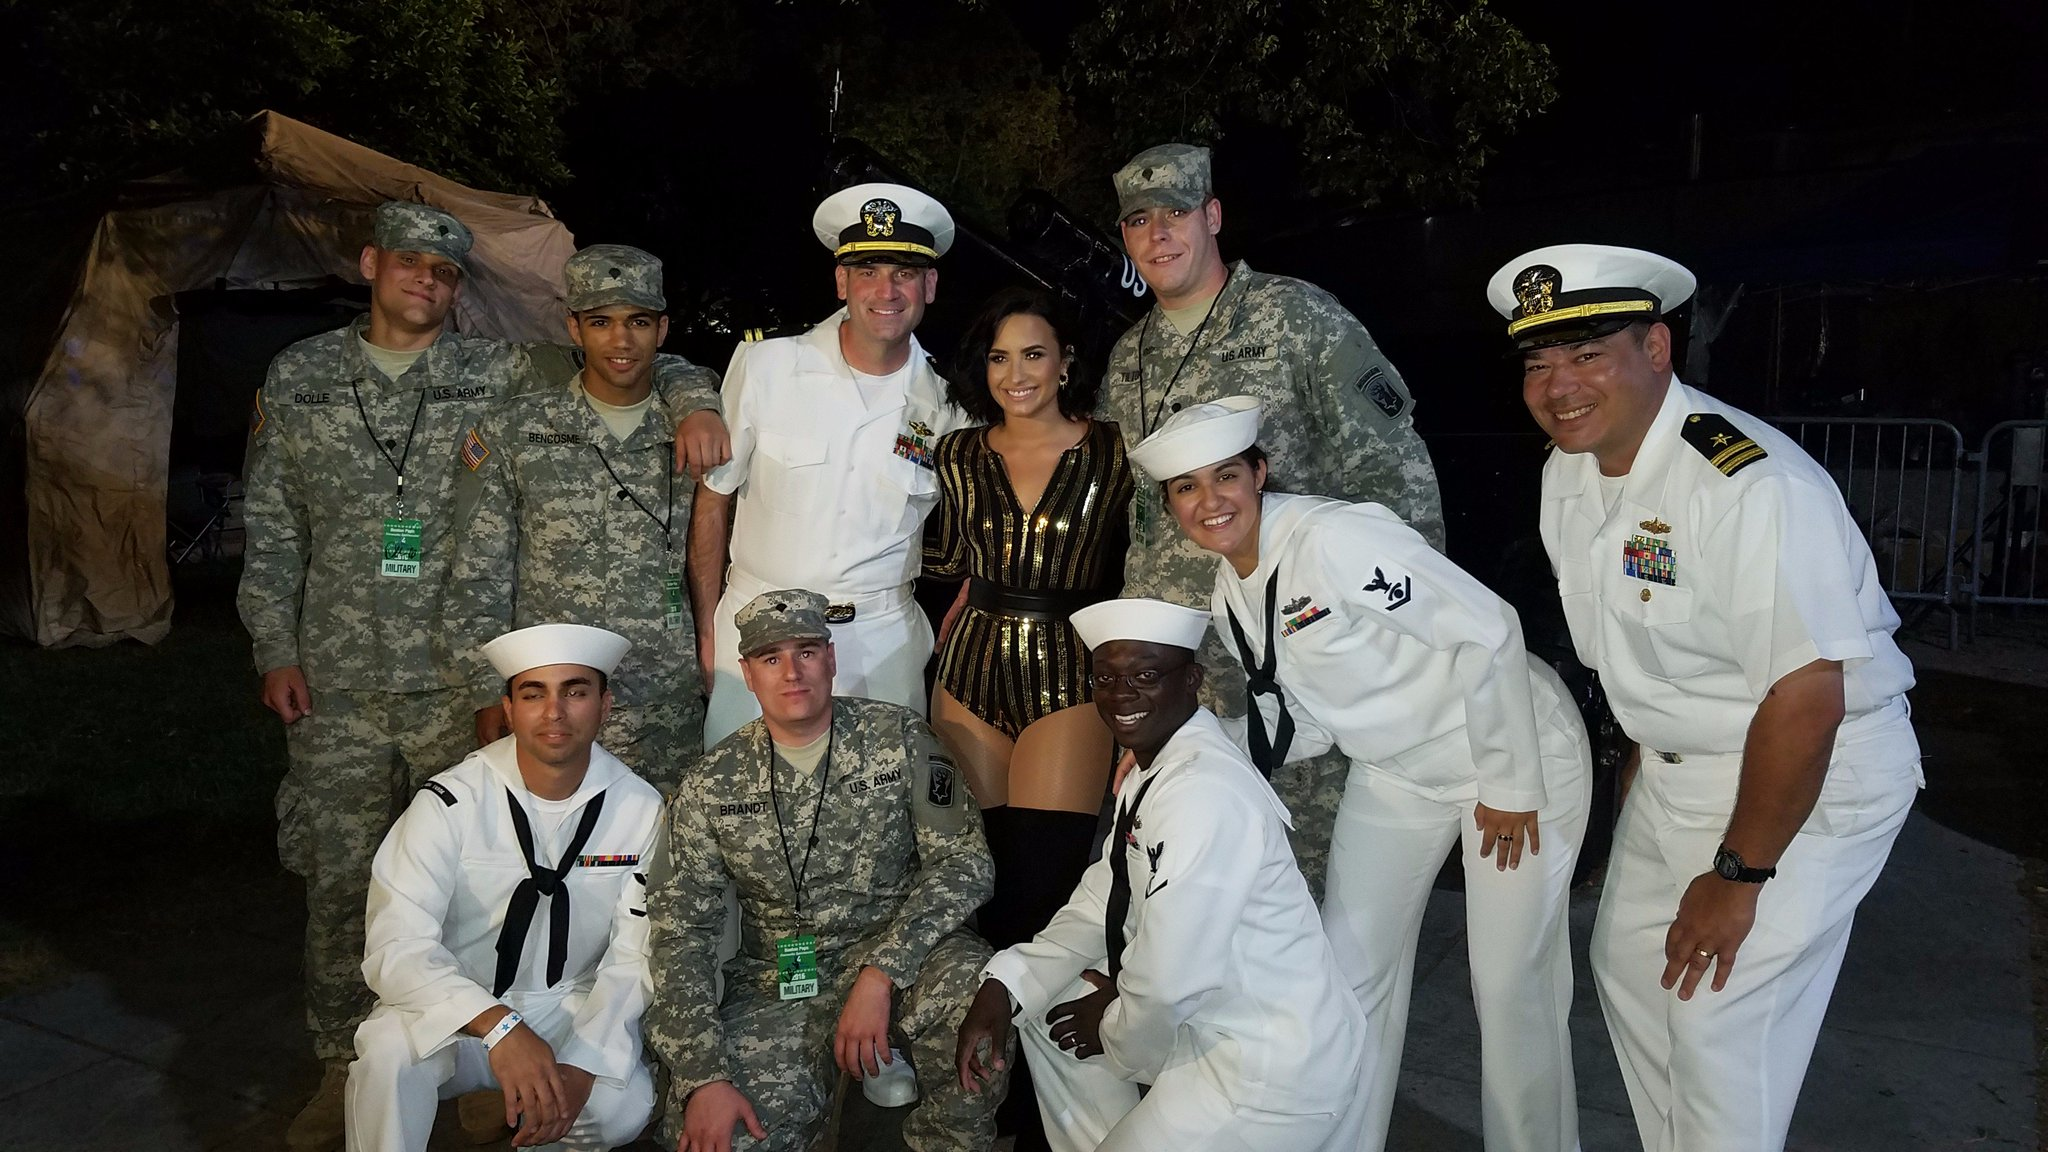 Loved meeting a few Navy and Army heroes over the weekend ������  #thankyou #hooyah #hooah https://t.co/dTeejXpa6K